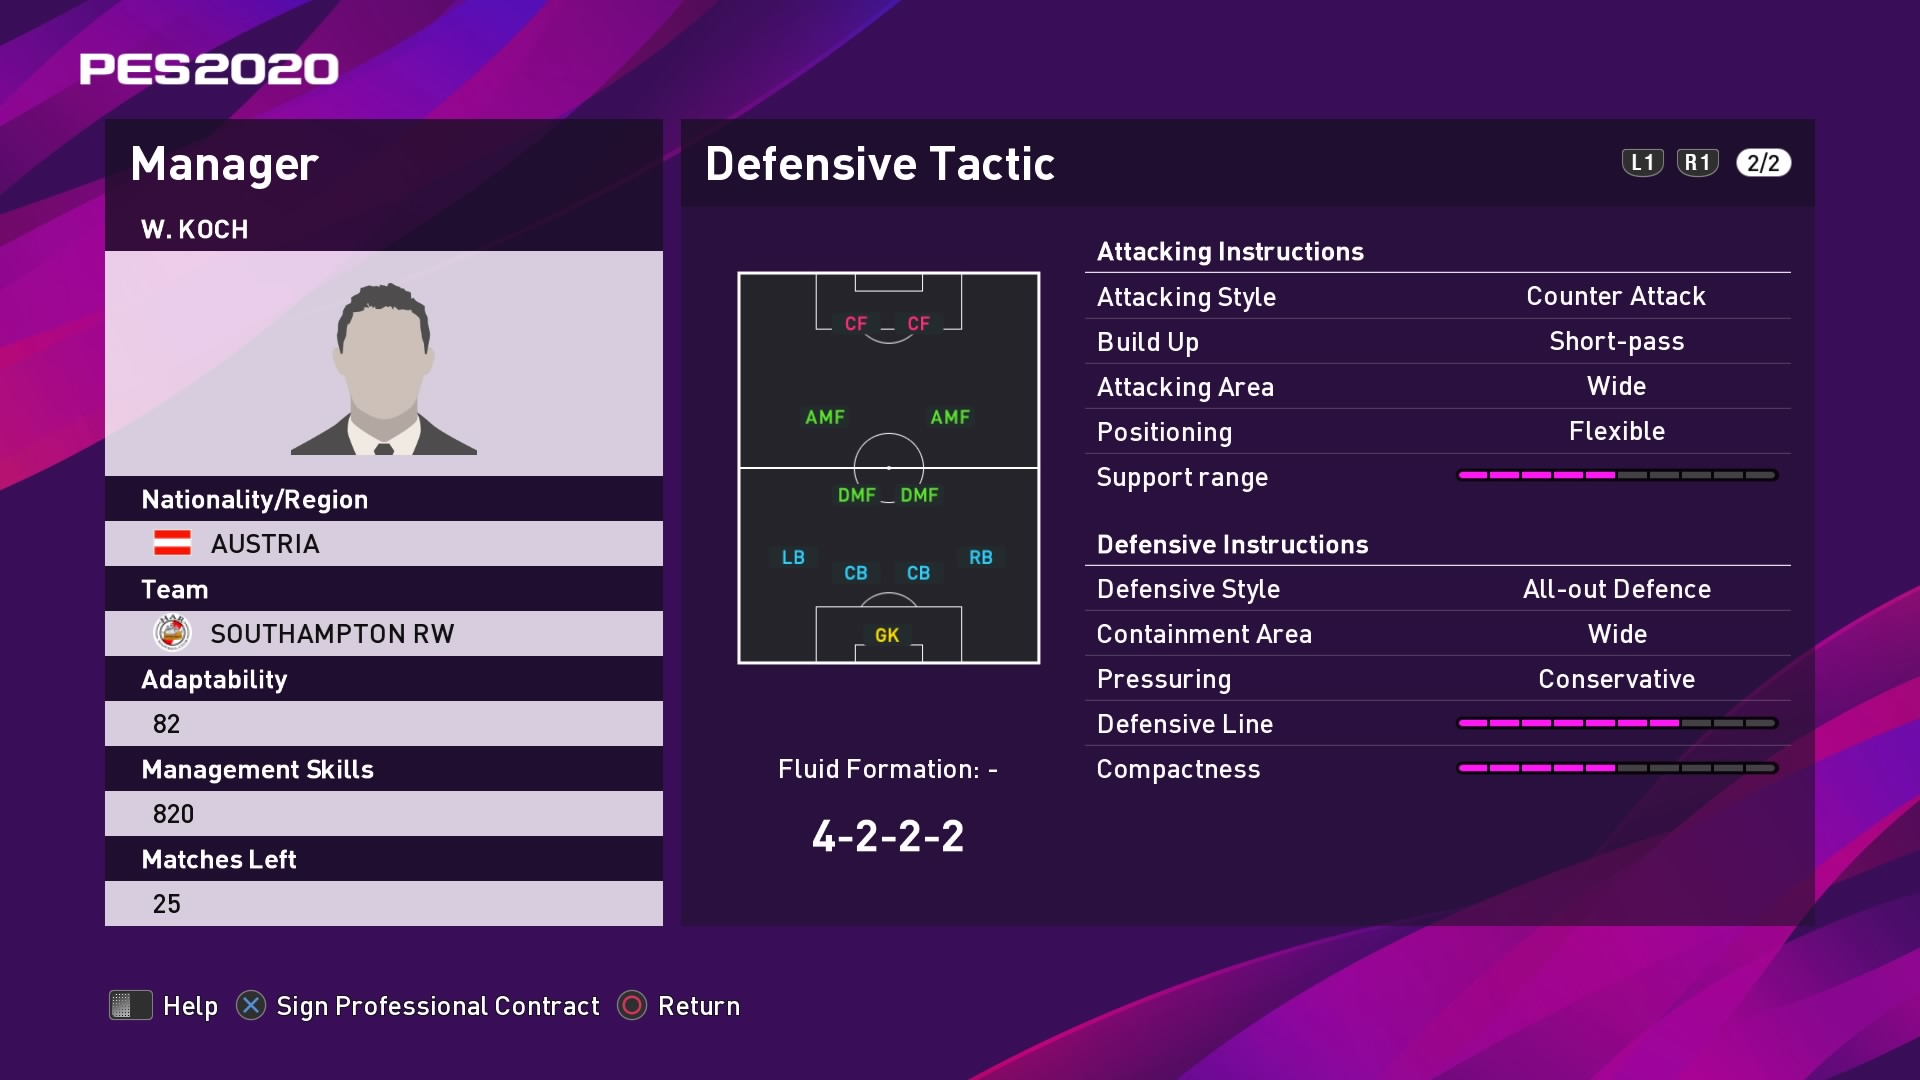 W. Koch (2) (Ralph Hasenhüttl) Defensive Tactic in PES 2020 myClub